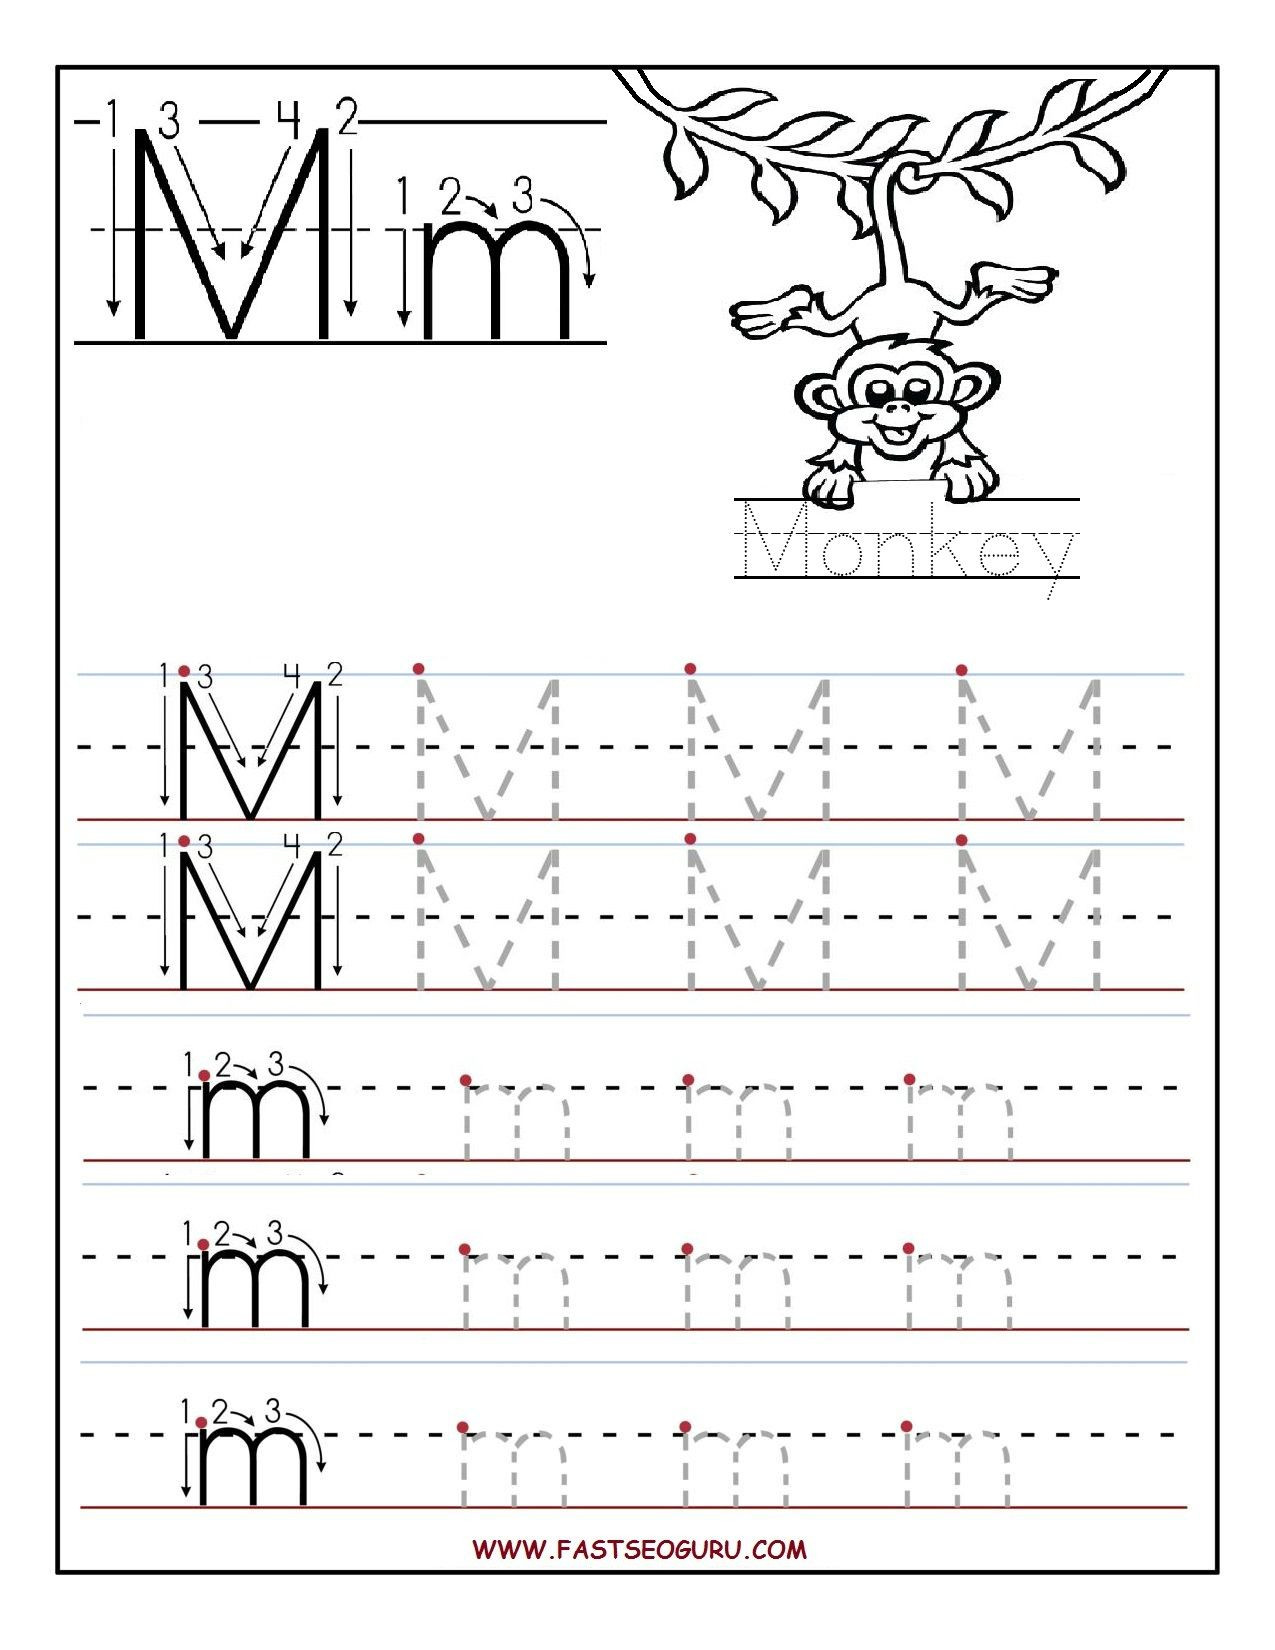 Letter M Worksheets Preschool Printable Letter M Tracing Worksheets for Preschool